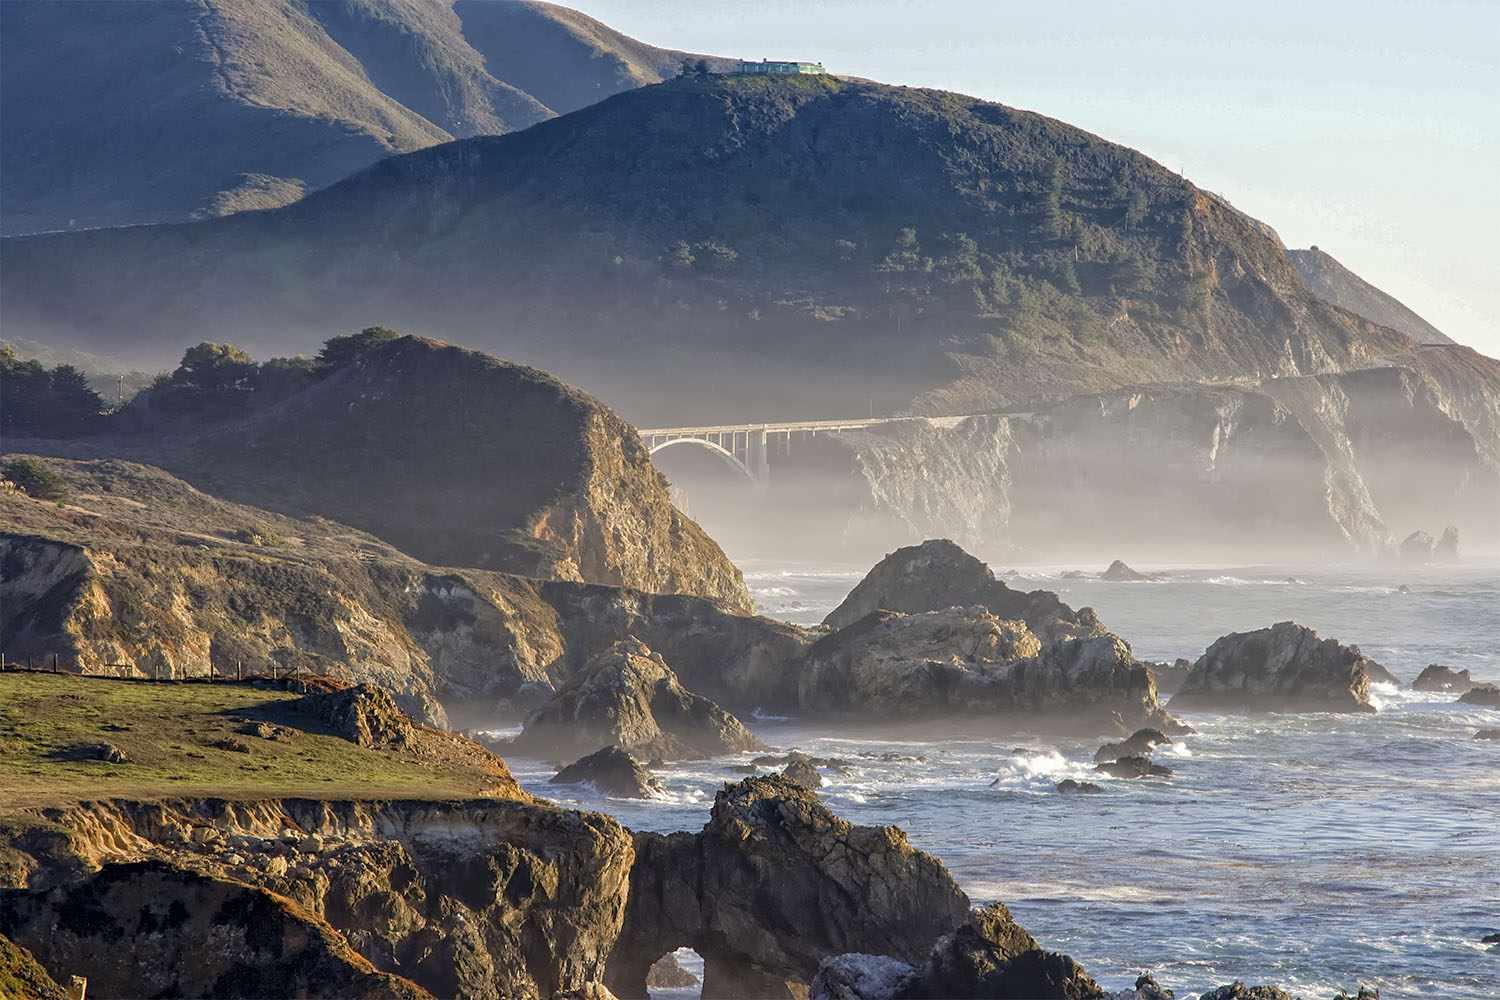 The misty and rocky coast of Big Sur on a partially cloudy day in California